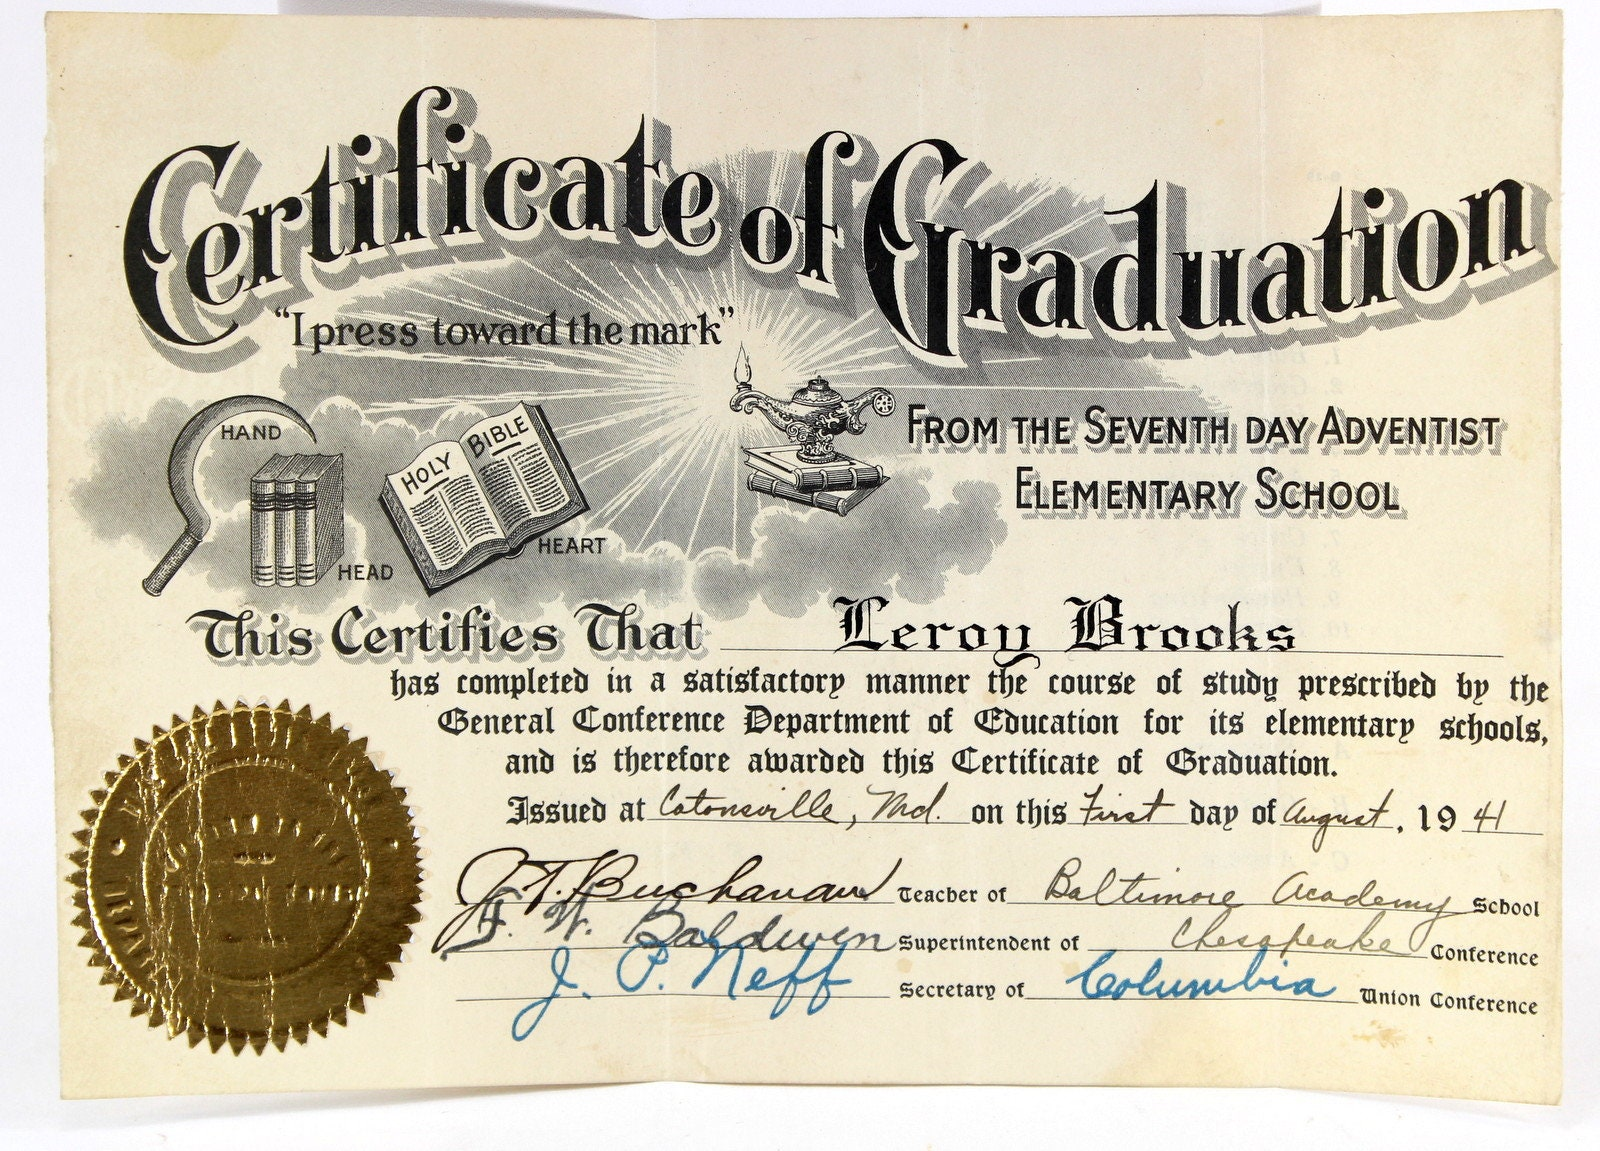 Catonsville Maryland Graduation Certificate Diploma 1944 Etsy